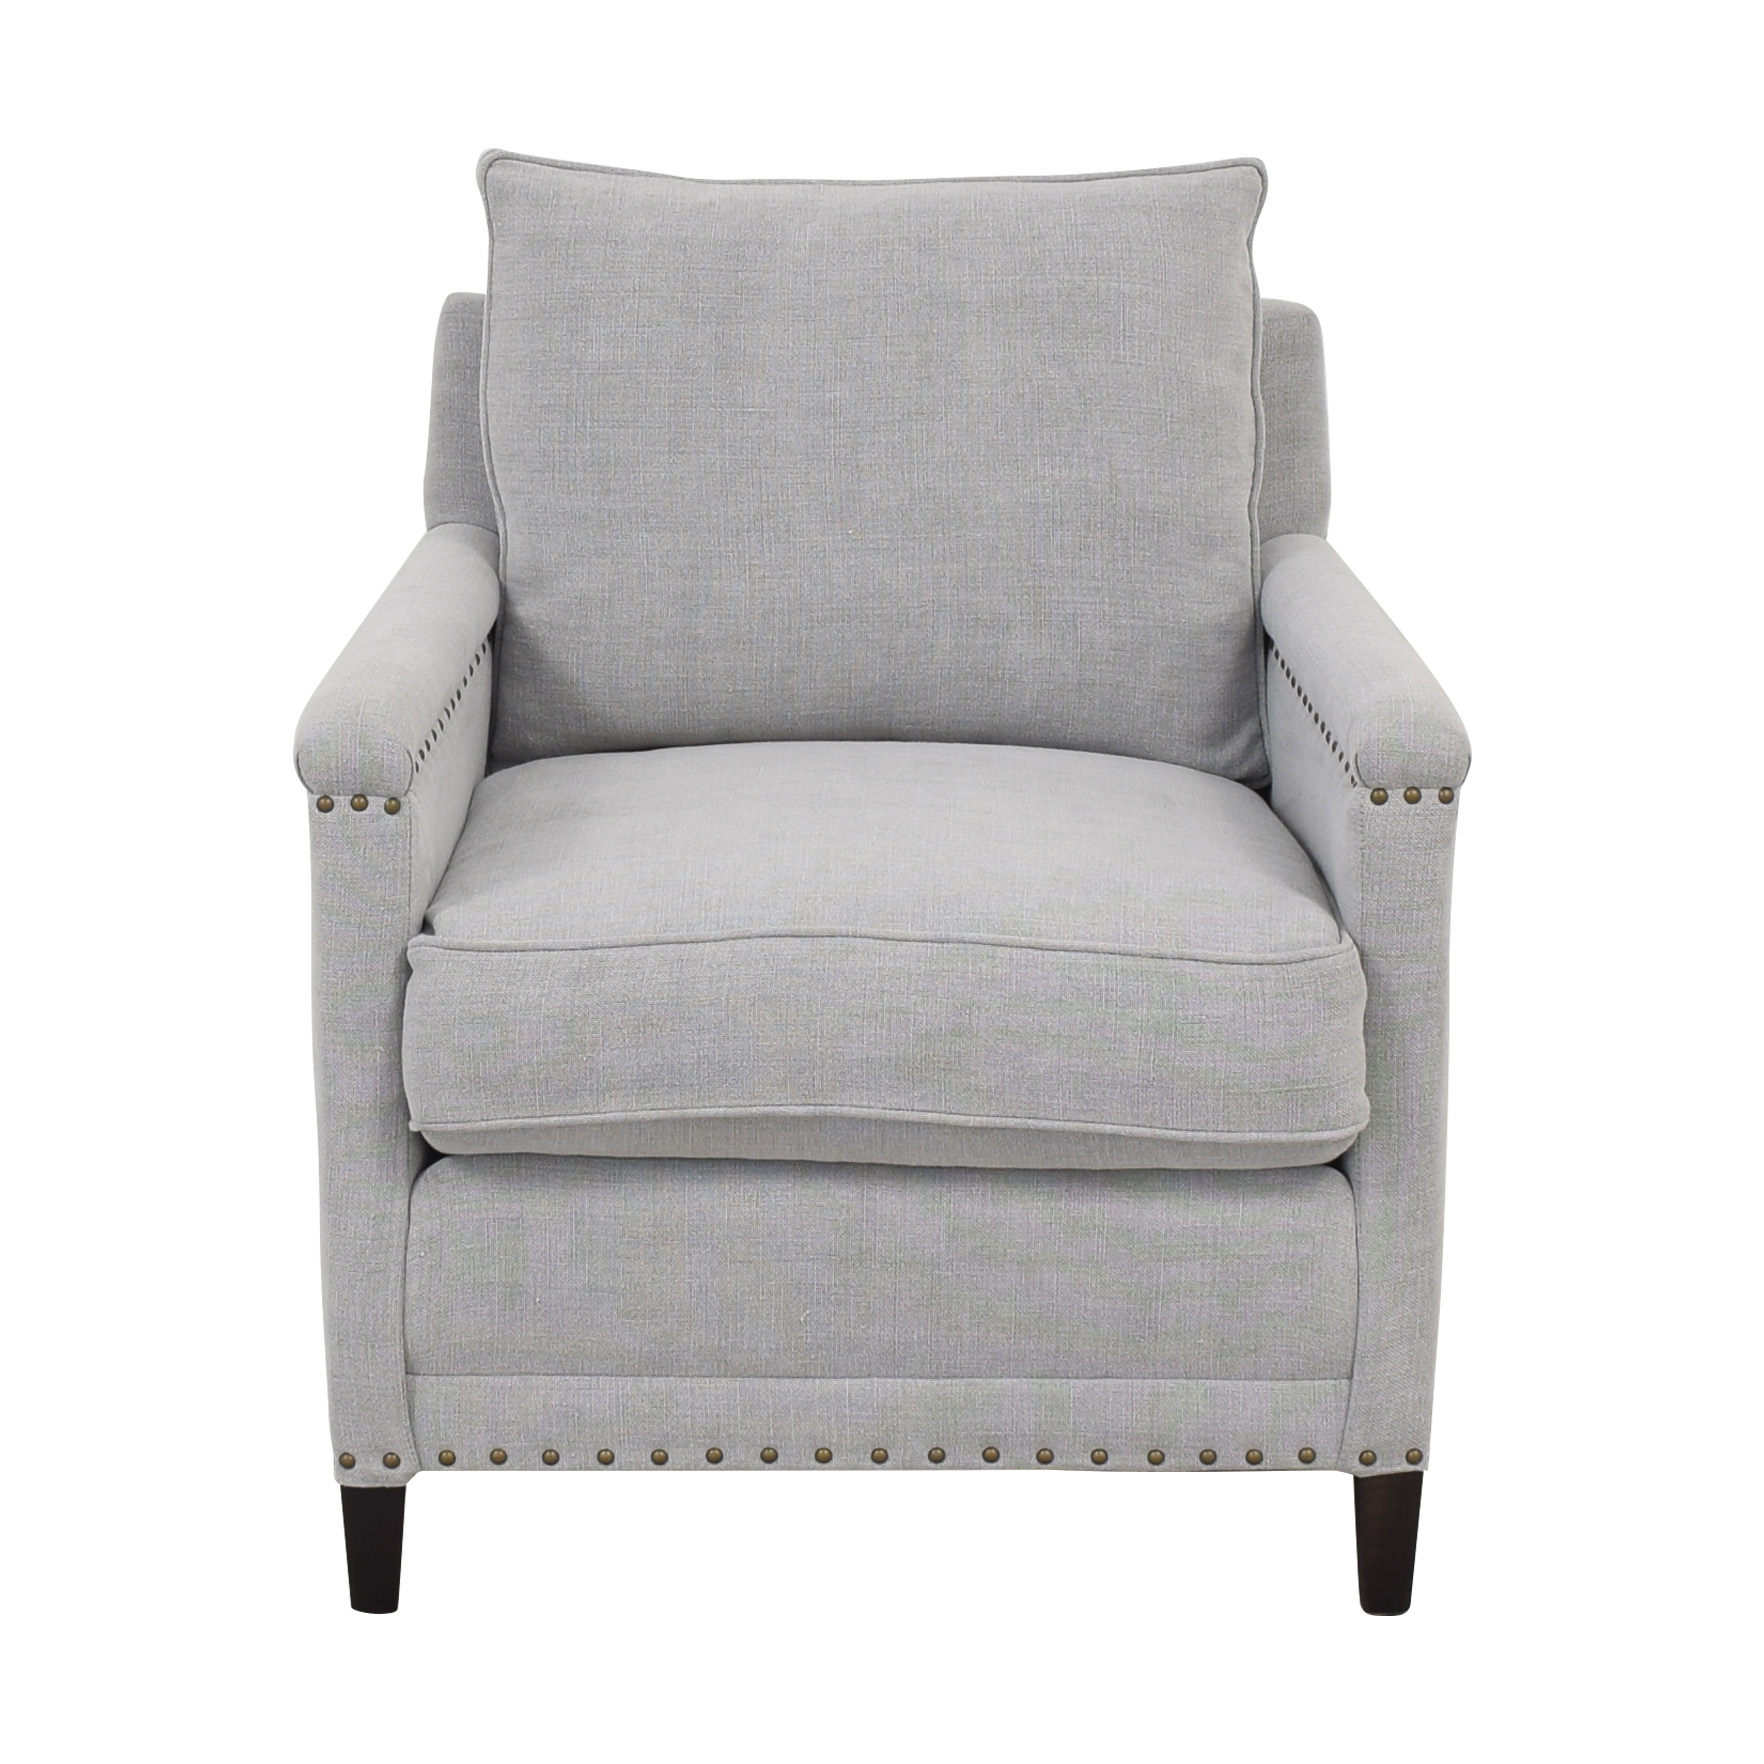 Williams Sonoma Williams Sonoma Addison Chair with Nailheads